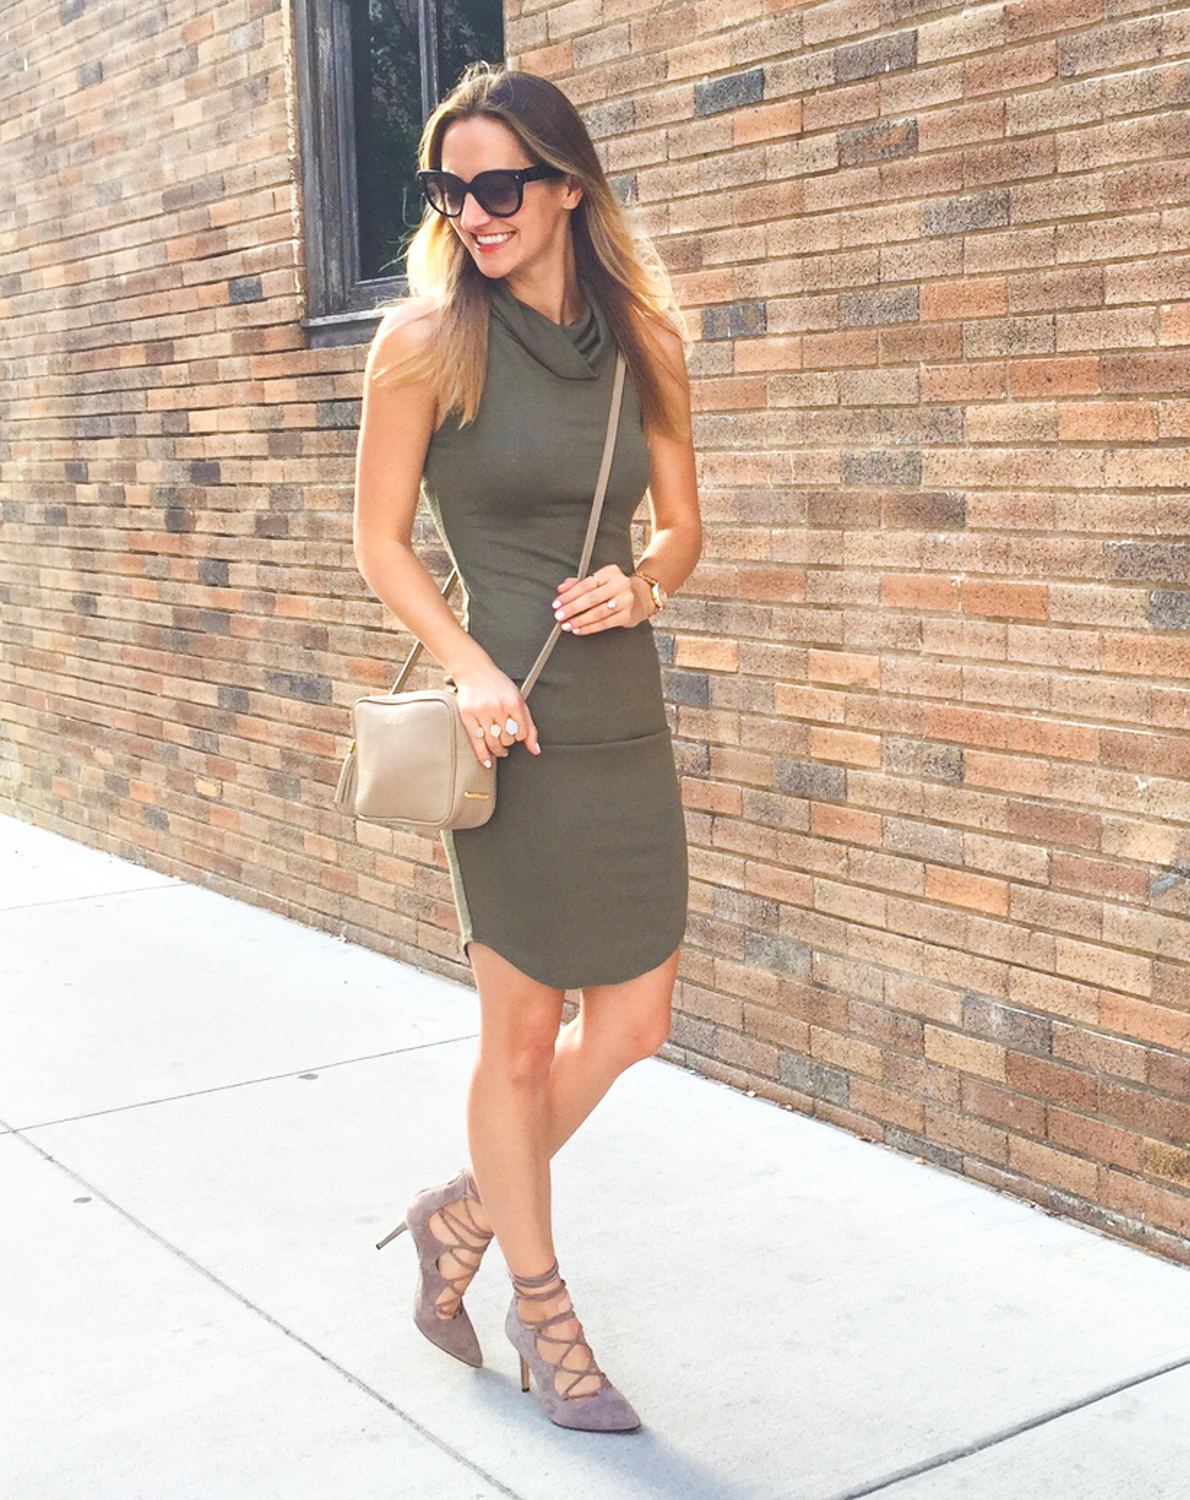 livvyland-blog-olivia-watson-nordstrom-cowl-neck-body-con-dress-lace-up-heels-austin-texas-fashion-blogger-4